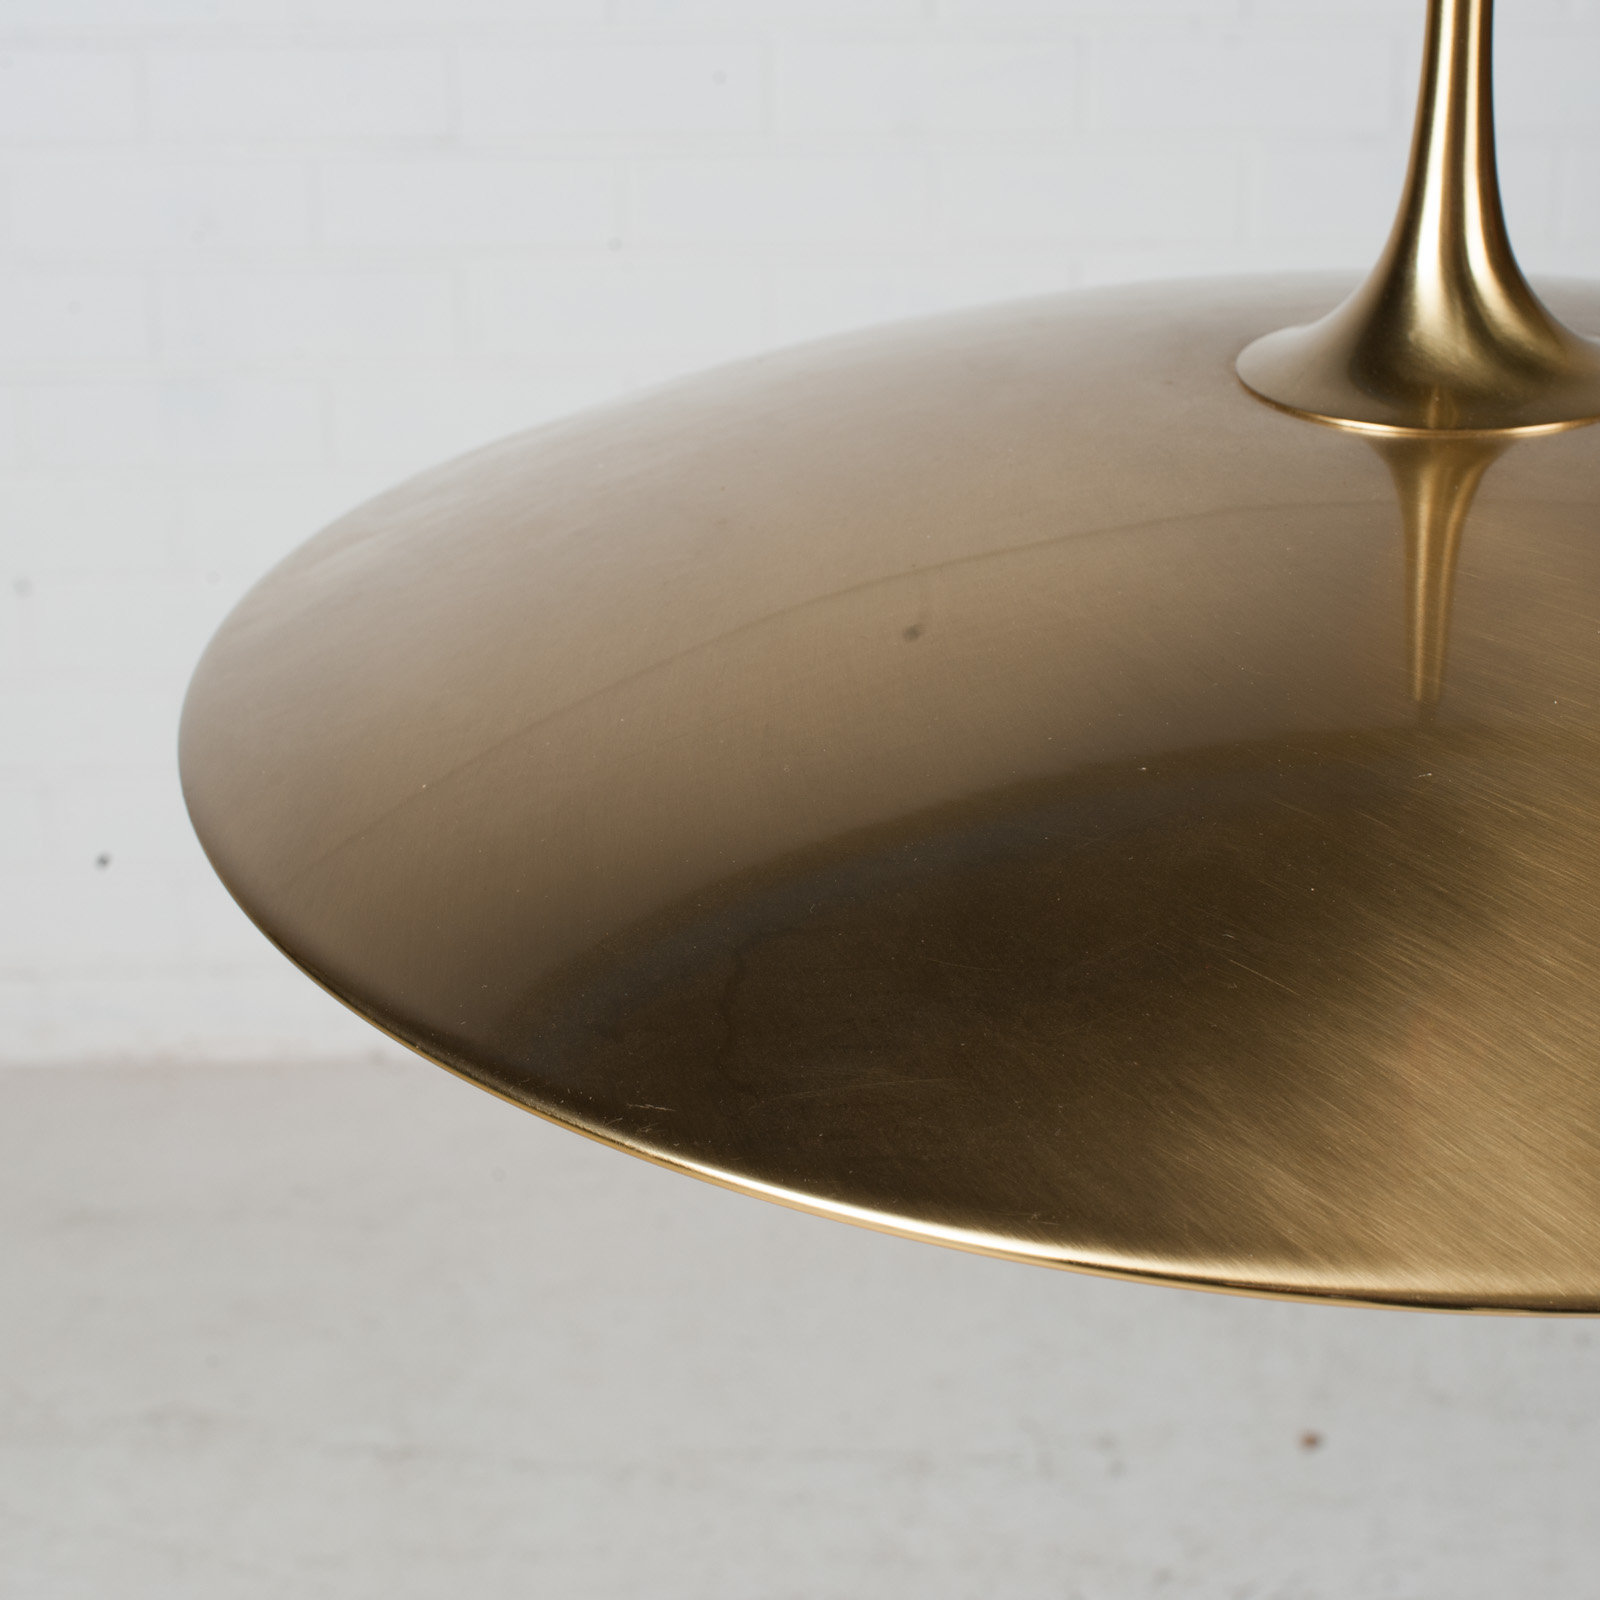 Onos 55 Counterbalance Pendant By Florian Schulz In Brass 1970s Germany 05